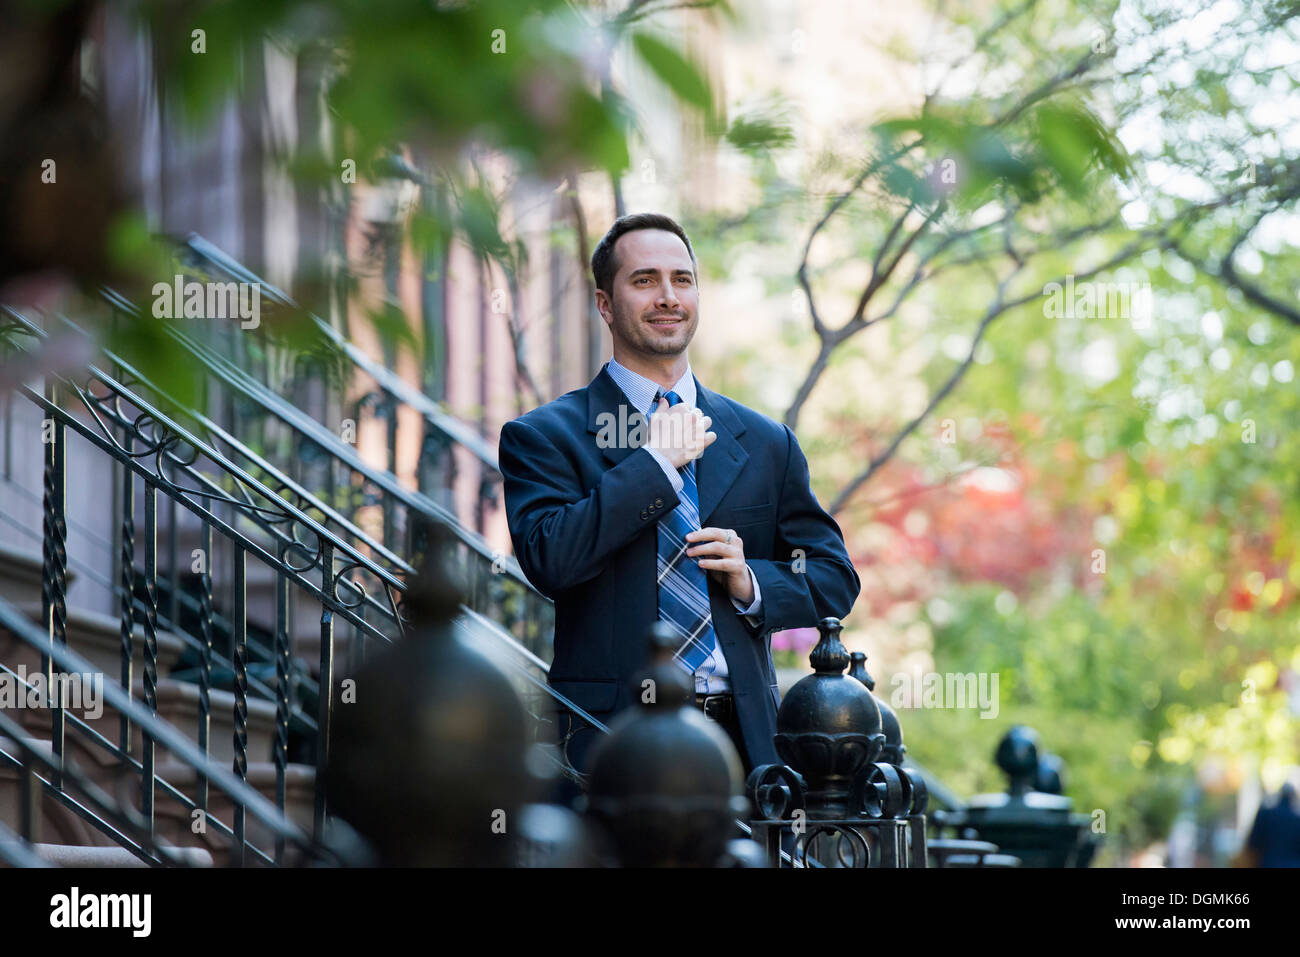 A man in a business suit adjusting his tie. At the bottom of the steps of a townhouse in a terrace. - Stock Image